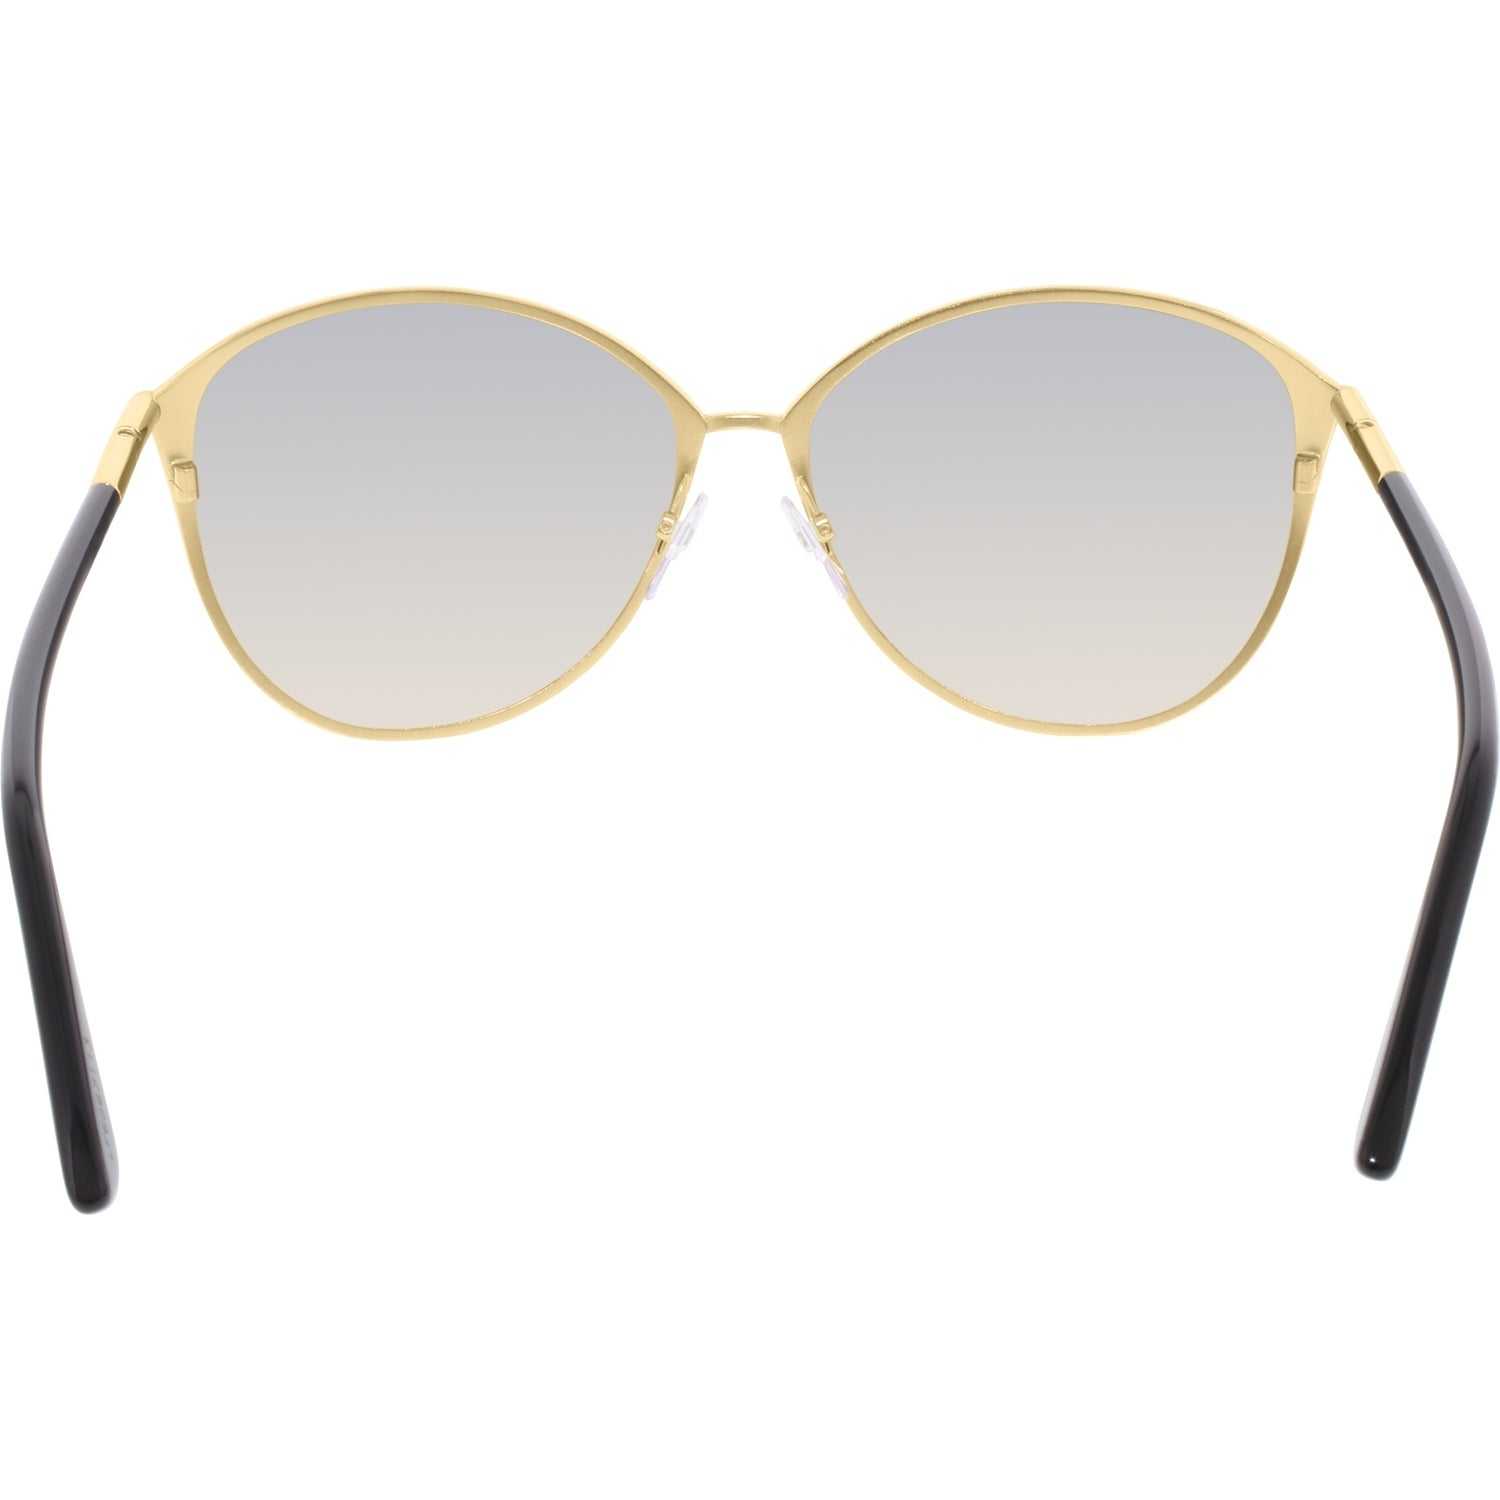 e13ac03e65 Shop Tom Ford Women s Gradient Penelope FT0320-28B-59 Black Round Sunglasses  - Free Shipping Today - Overstock - 18901410